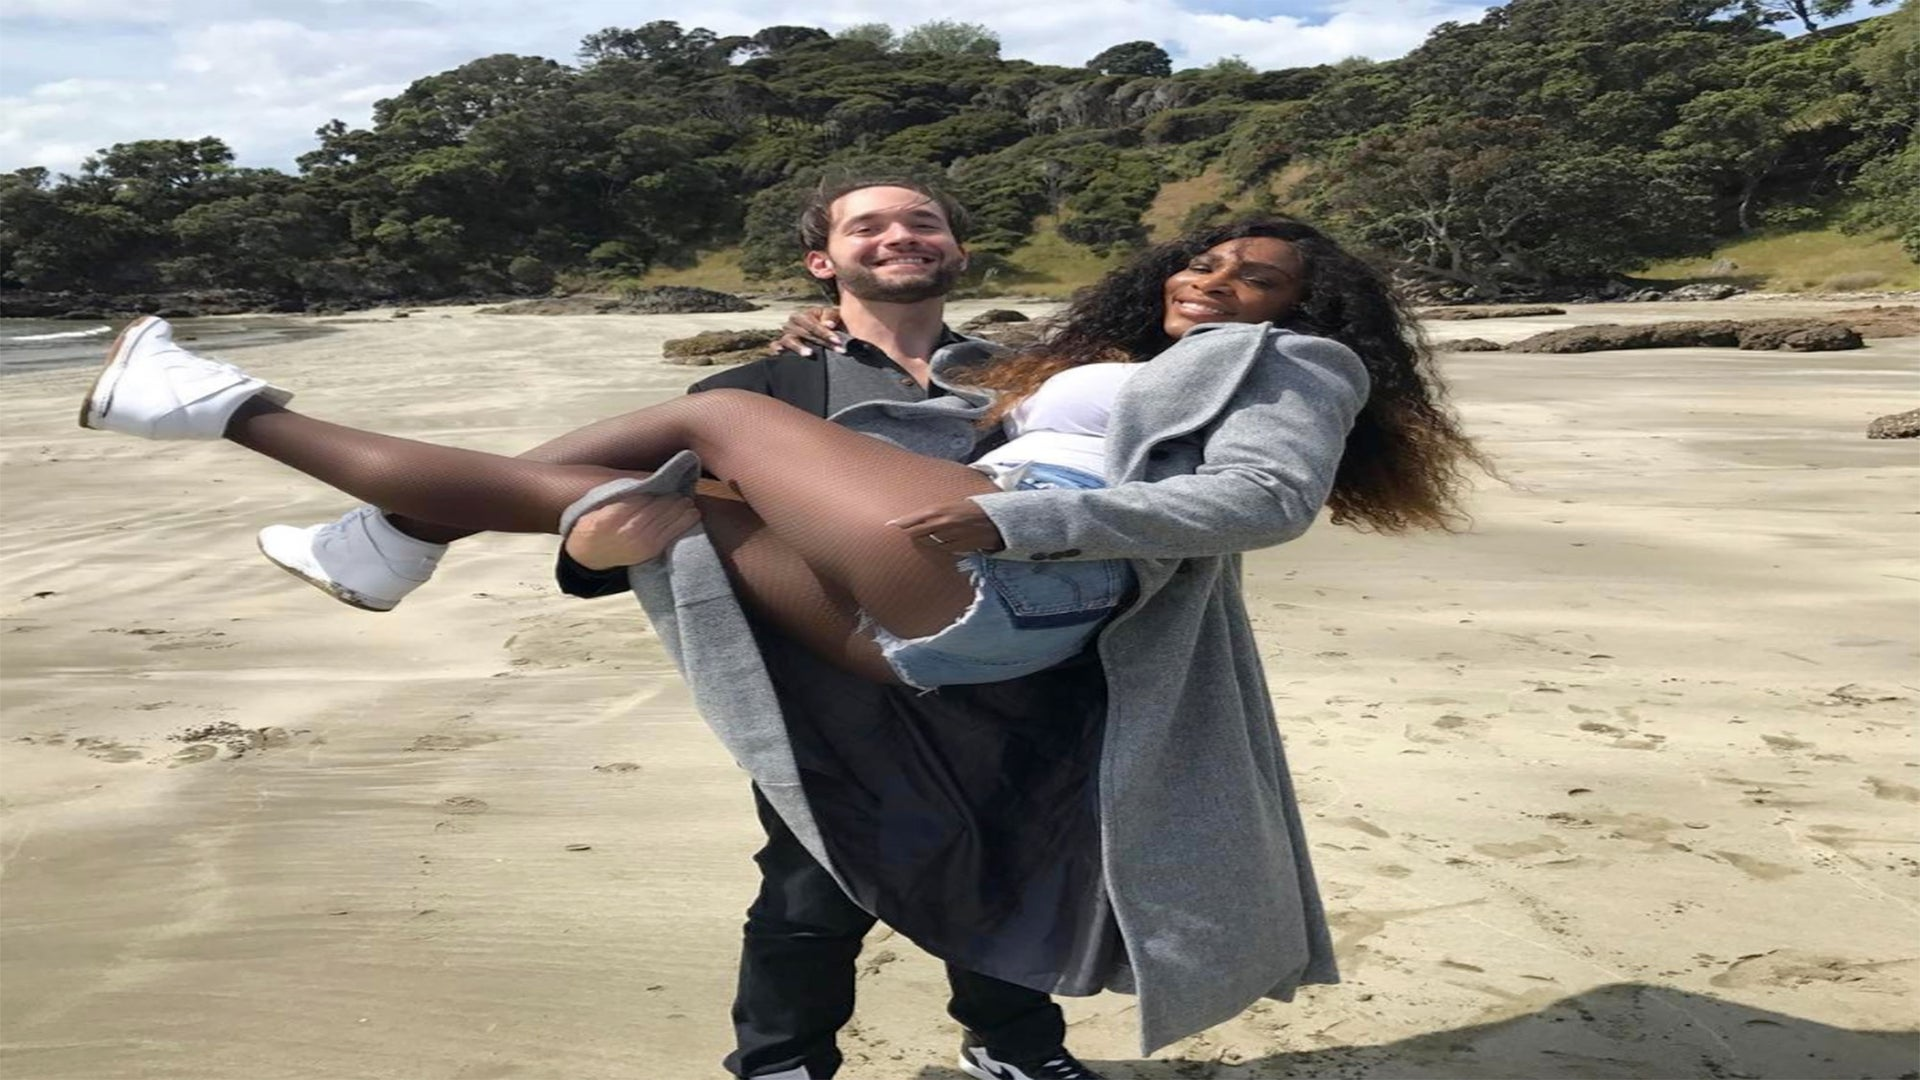 Serena Williams Gets Carried Away With Fiancé Alex Ohanian In Sweet Beach Snap